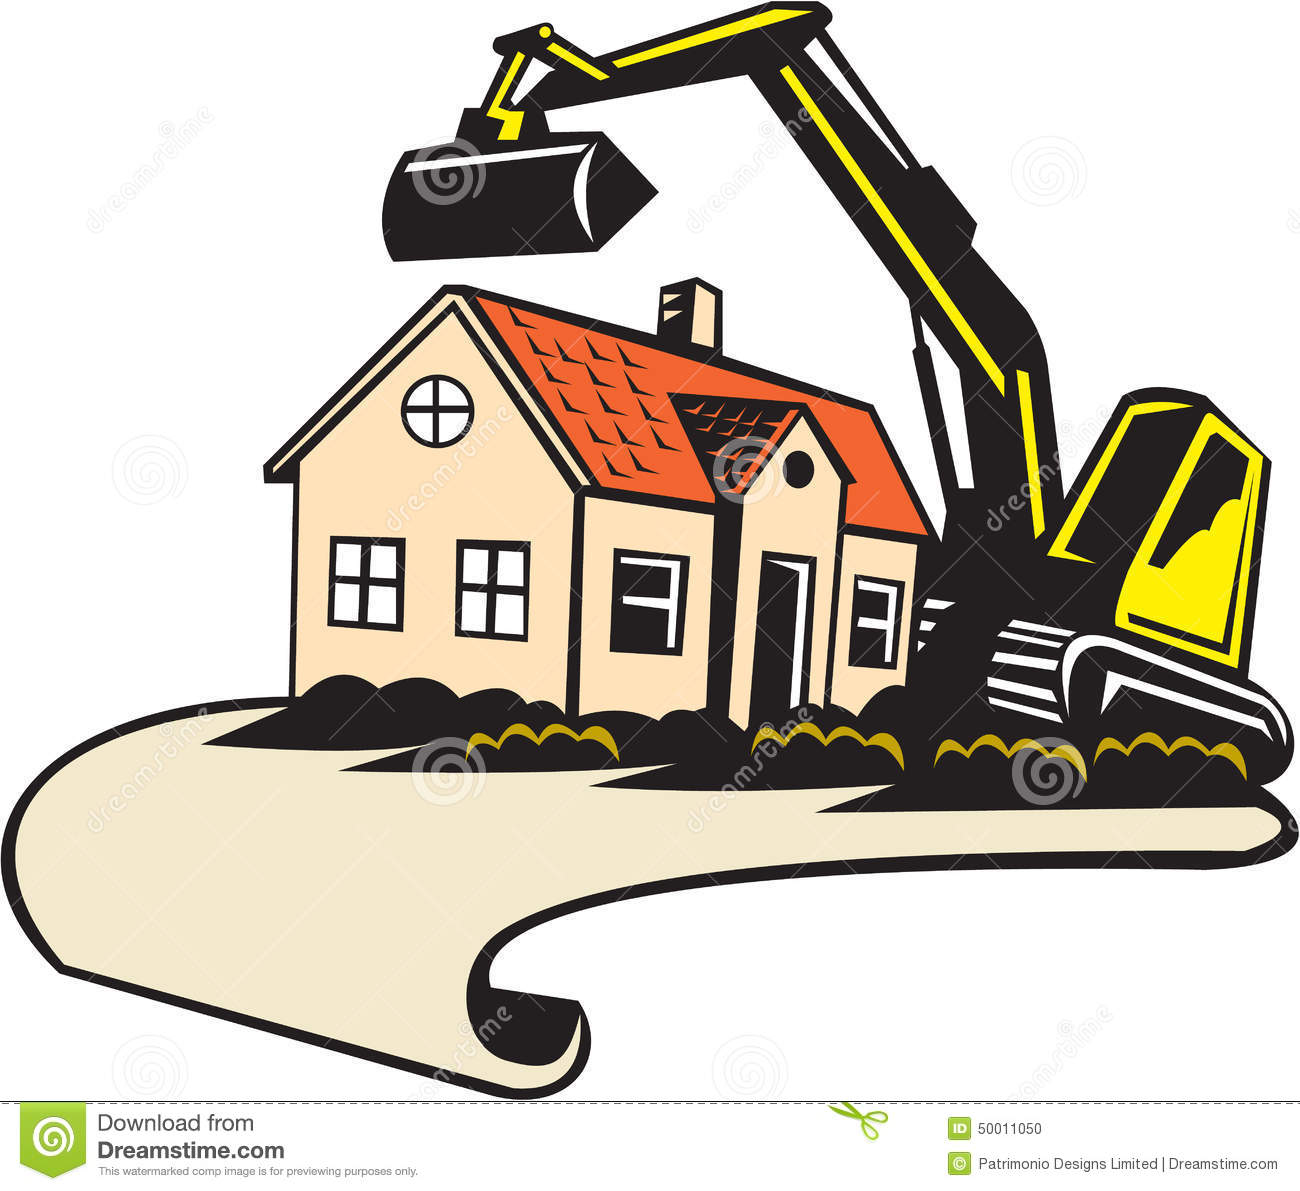 House tear down clipart.